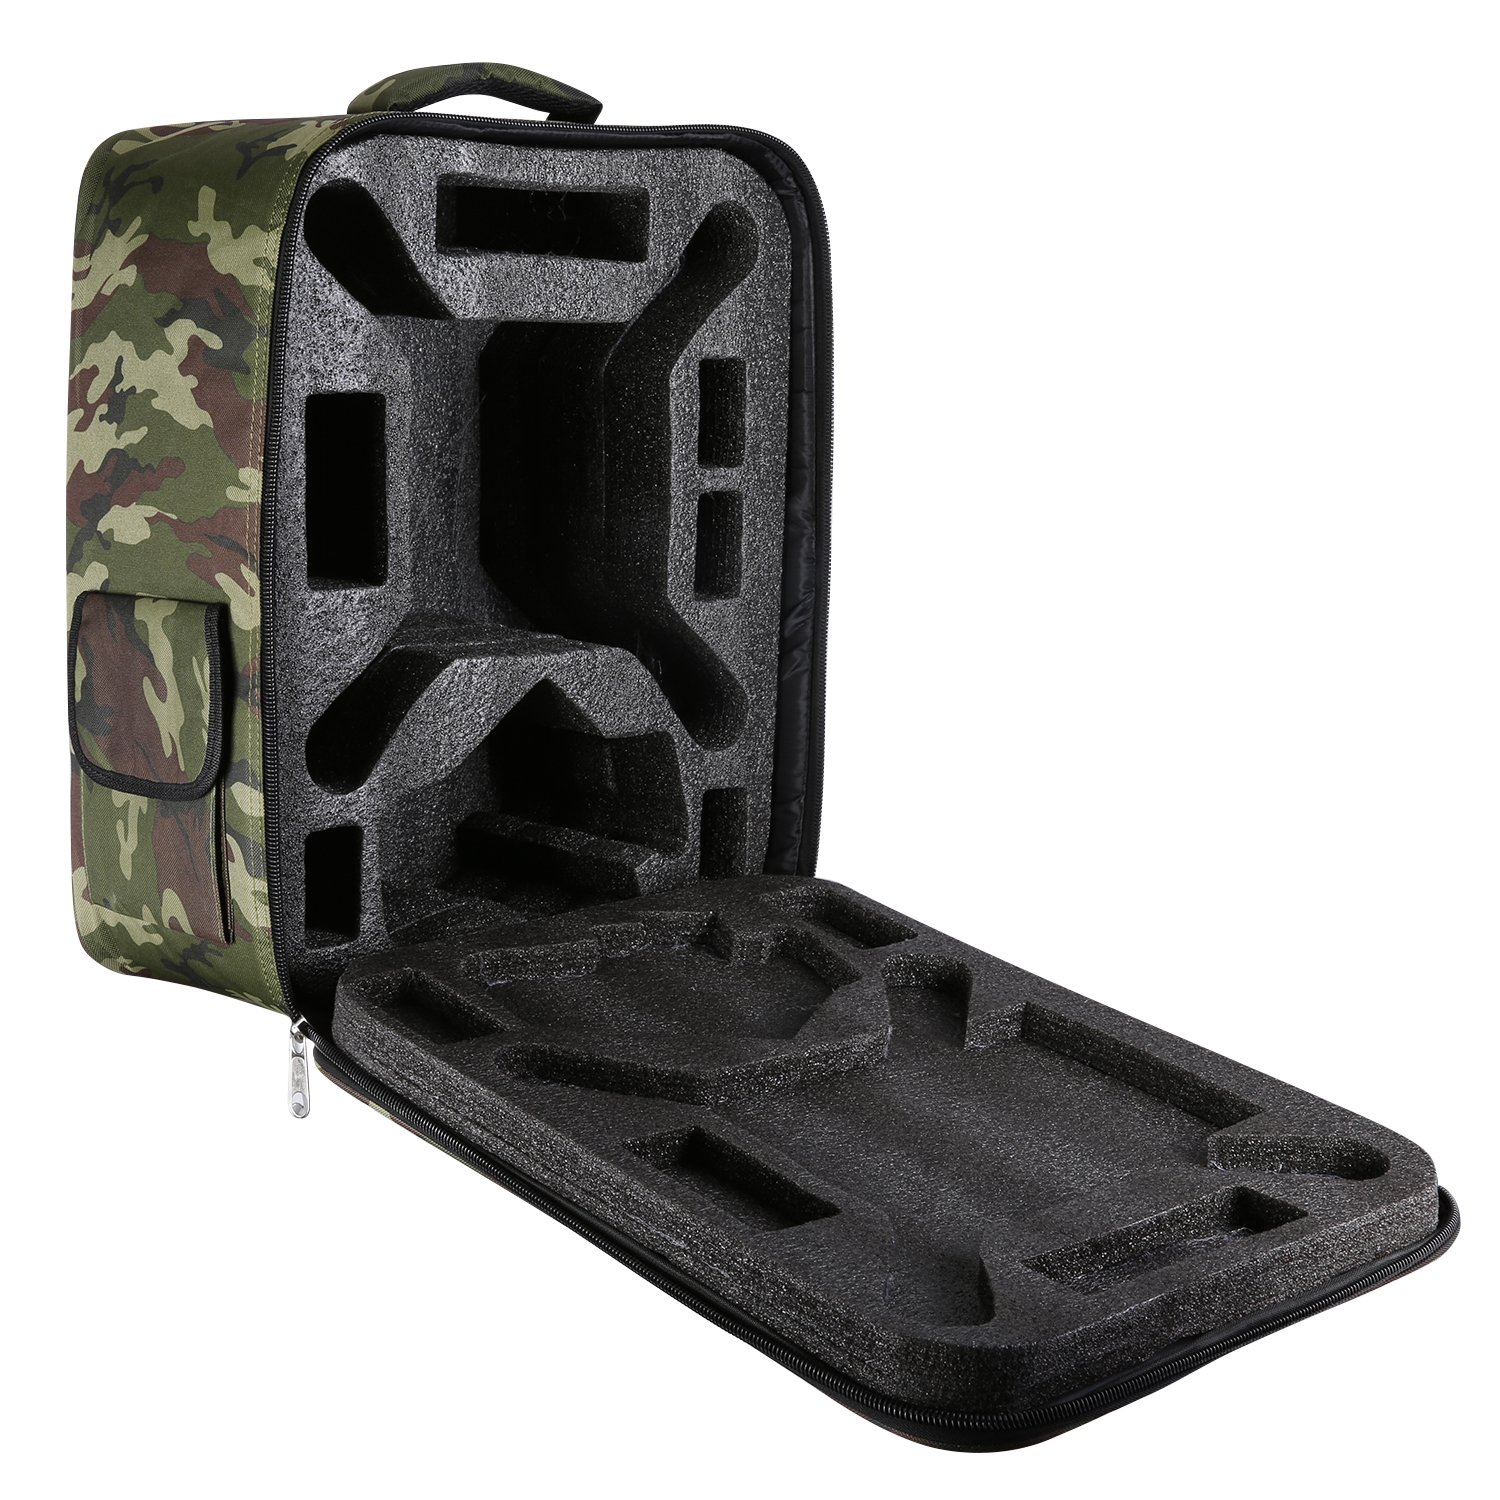 Neewer Multi-Function Waterproof Backpack Bag Case for DJI Phantom 1 FC40 2 2 Vision 2 Vision+ 3, DJI 3 Professional, Advanced, Standard, 4K Cameras and Accessories(Camouflage)